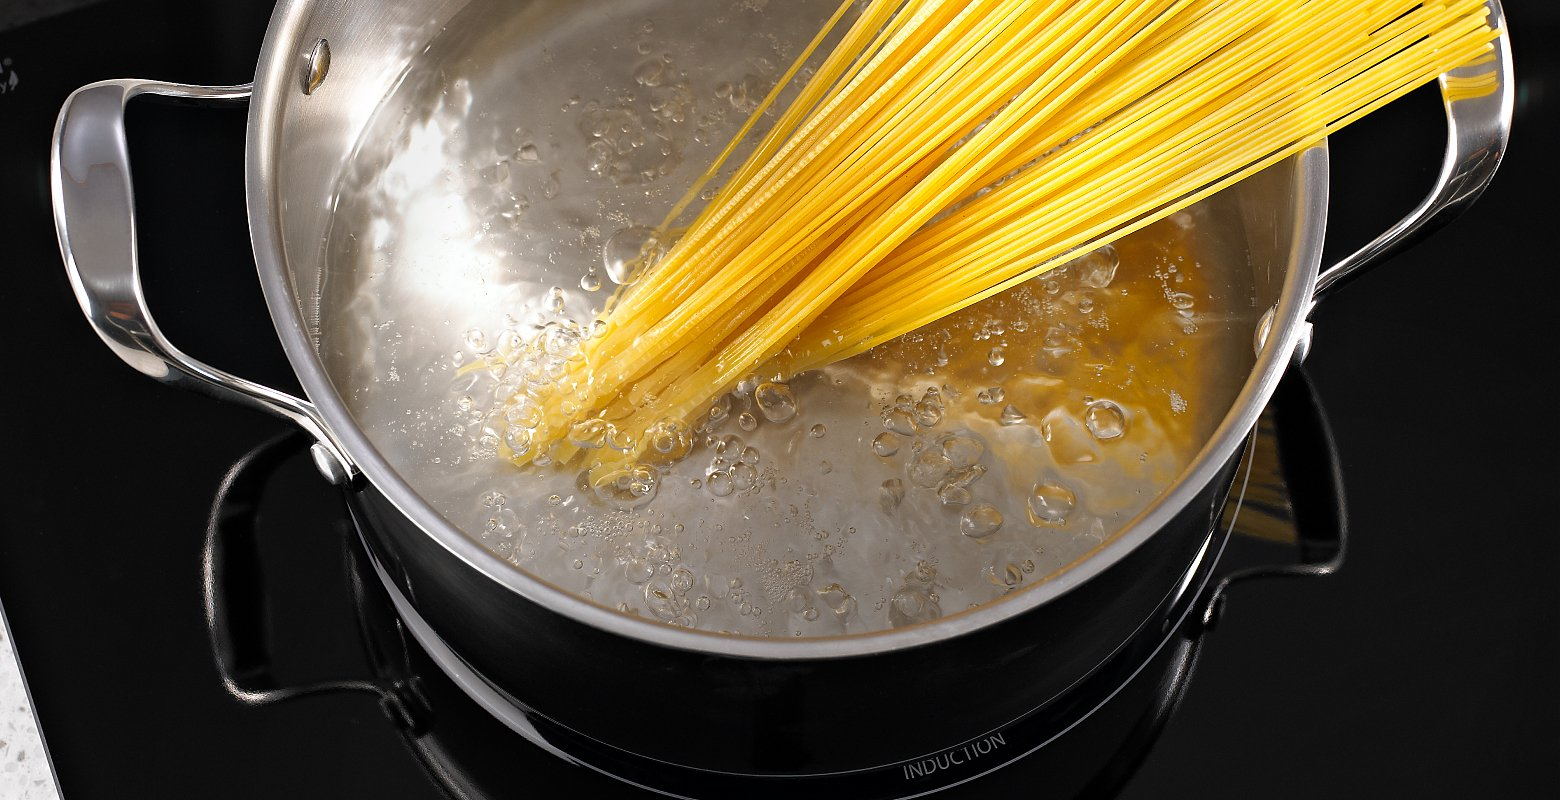 Spaghetti noodles in a pot of boiling water on an induction cooktop